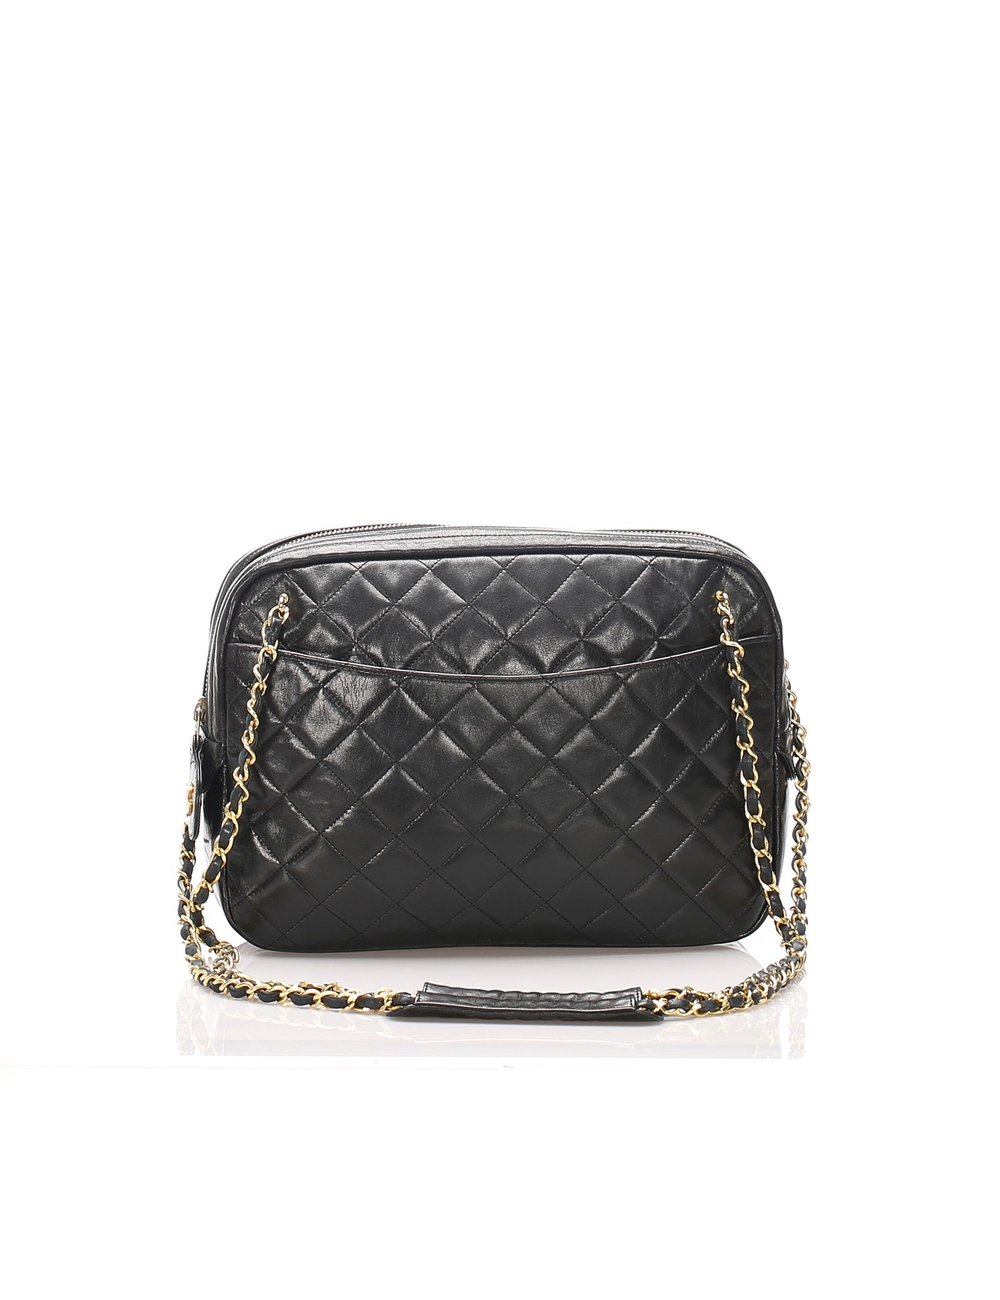 This shoulder bag features a lambskin leather body, a front exterior slip pocket, a gold-tone chain